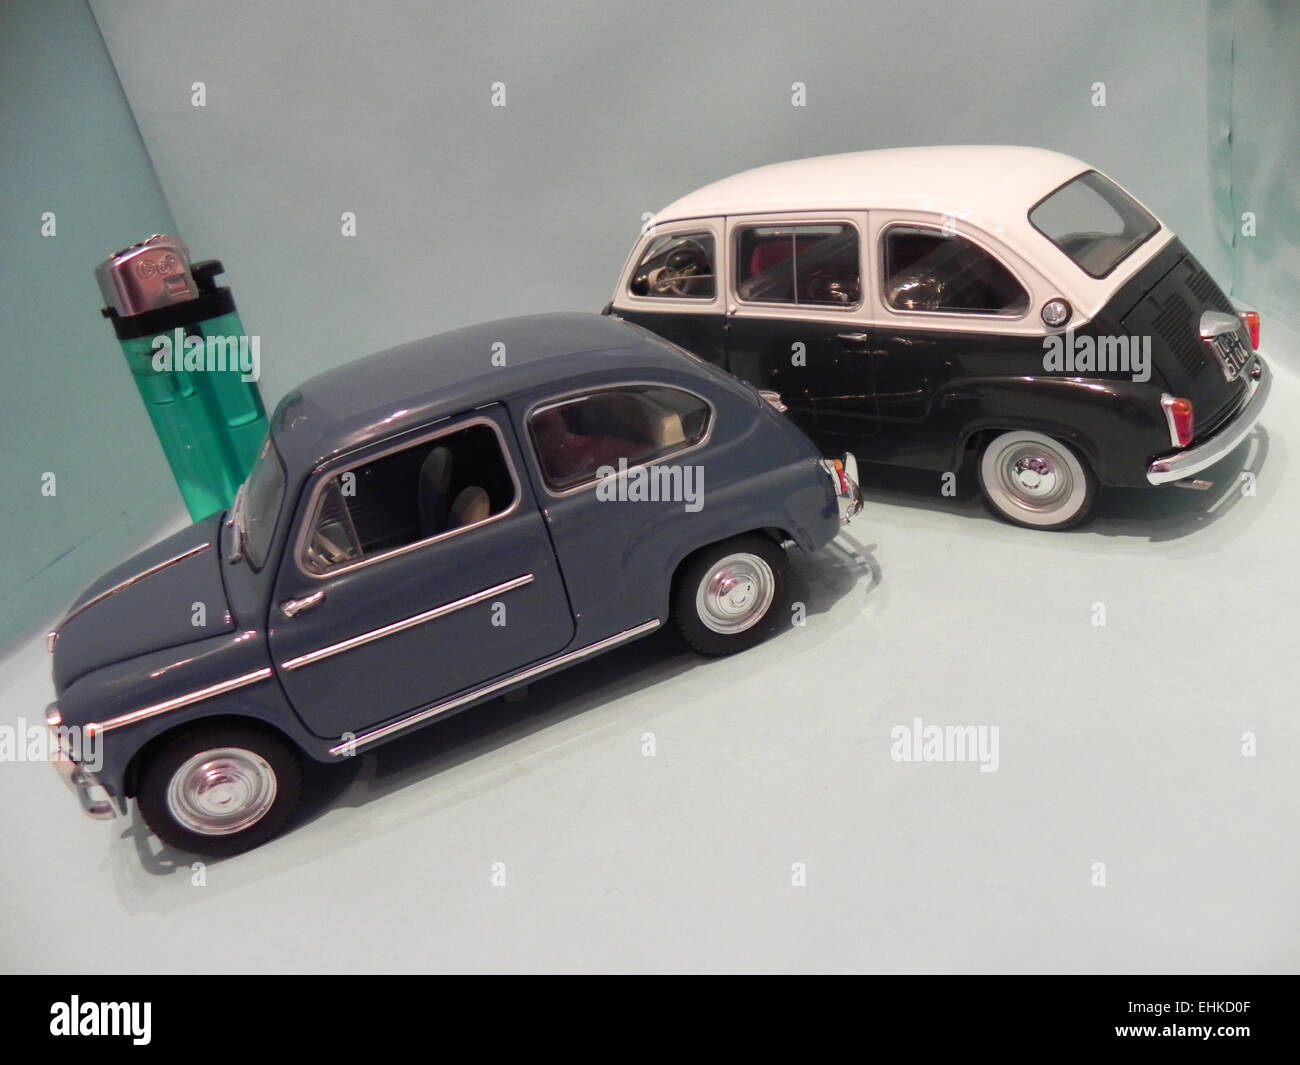 Fiat 600 Multipla Stock Photos & Fiat 600 Multipla Stock ...